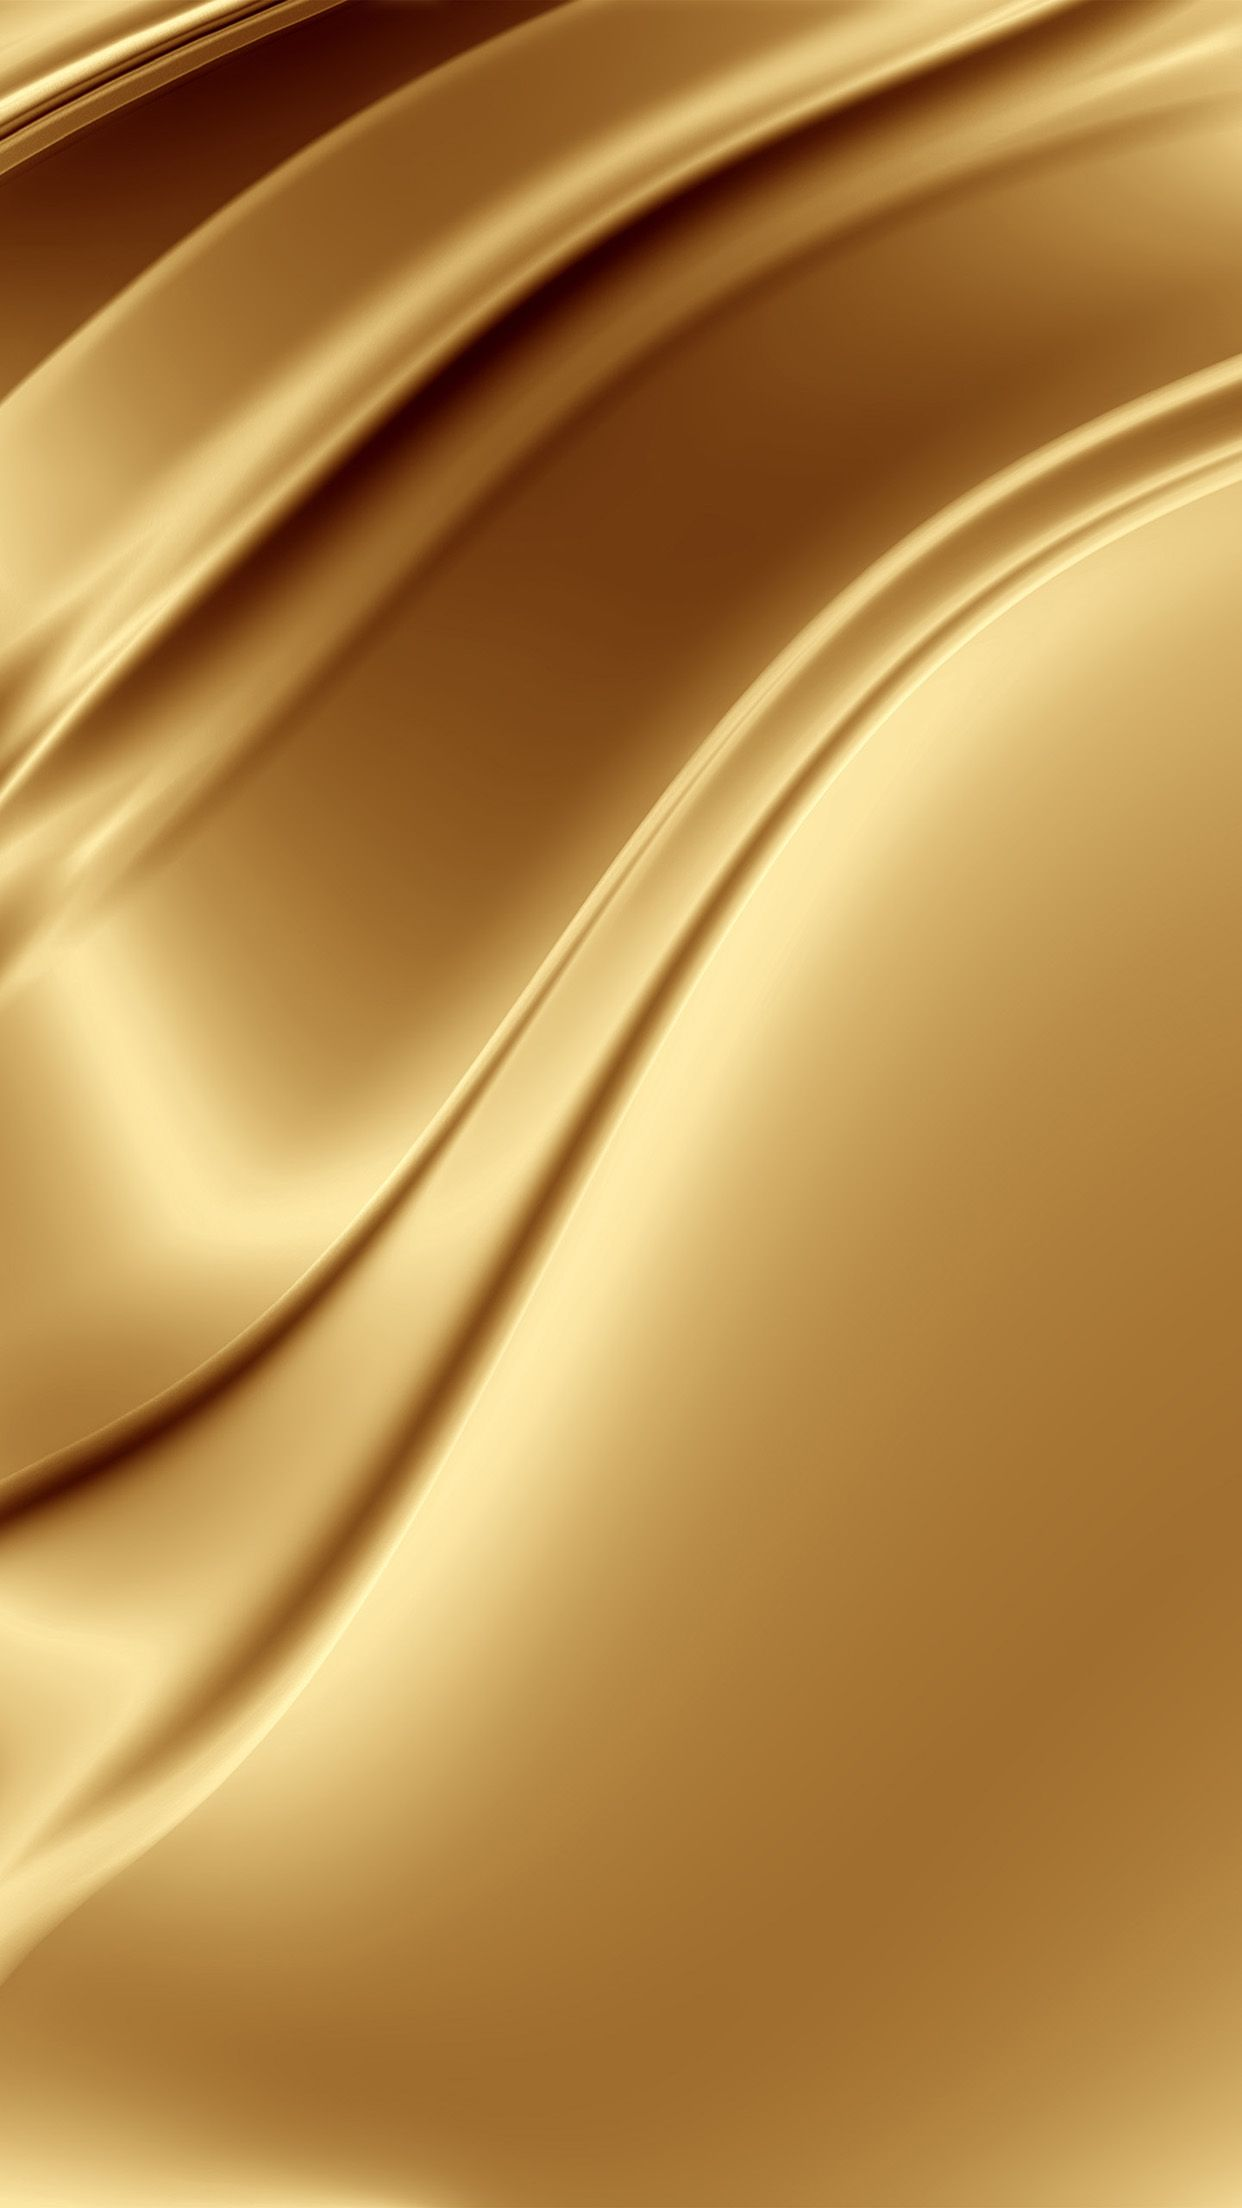 Gold Iphone 6 Logo Bing Images Gold Wallpaper Hd Gold